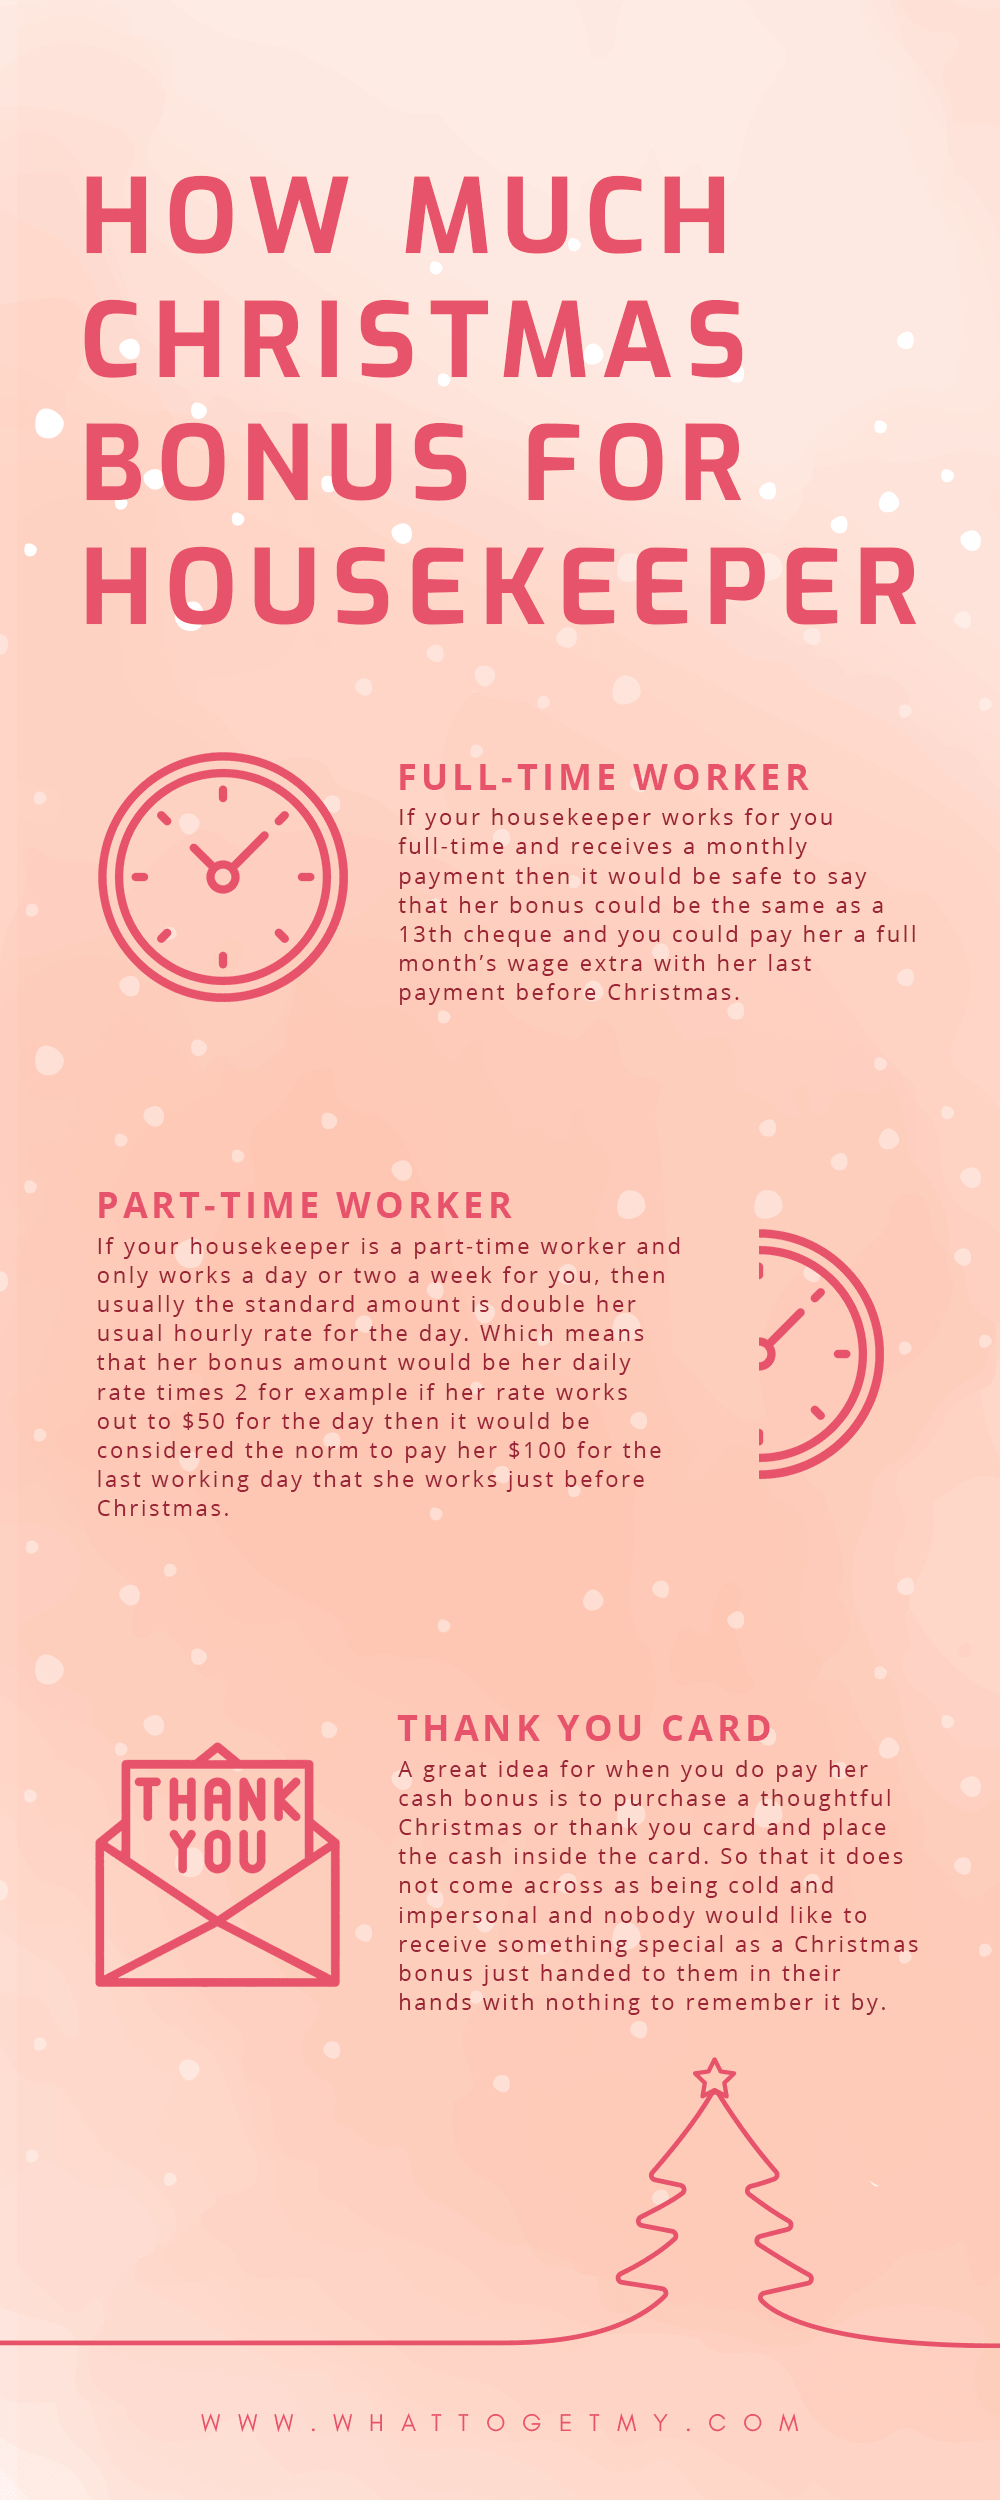 Infographic HOW MUCH CHRISTMAS BONUS FOR HOUSEKEEPER